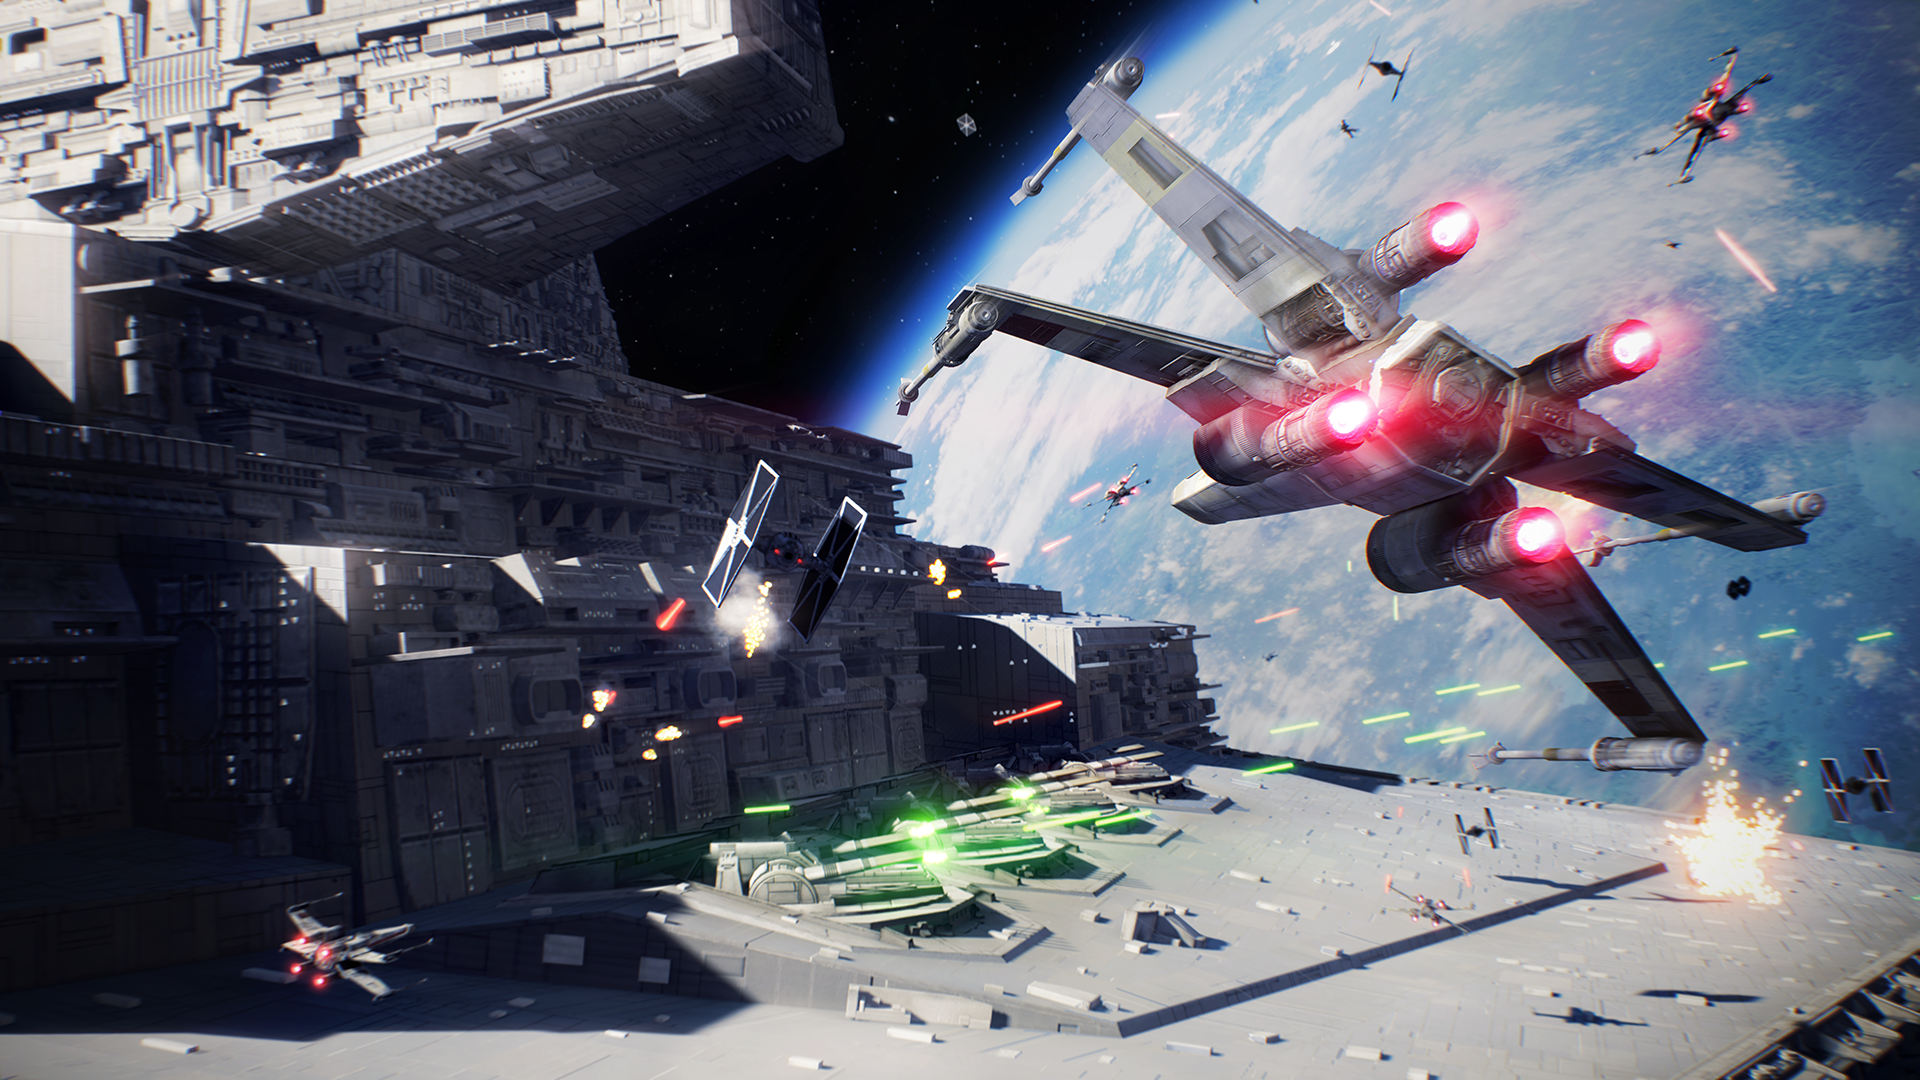 Star Wars Battlefront 2 - X-wing assault